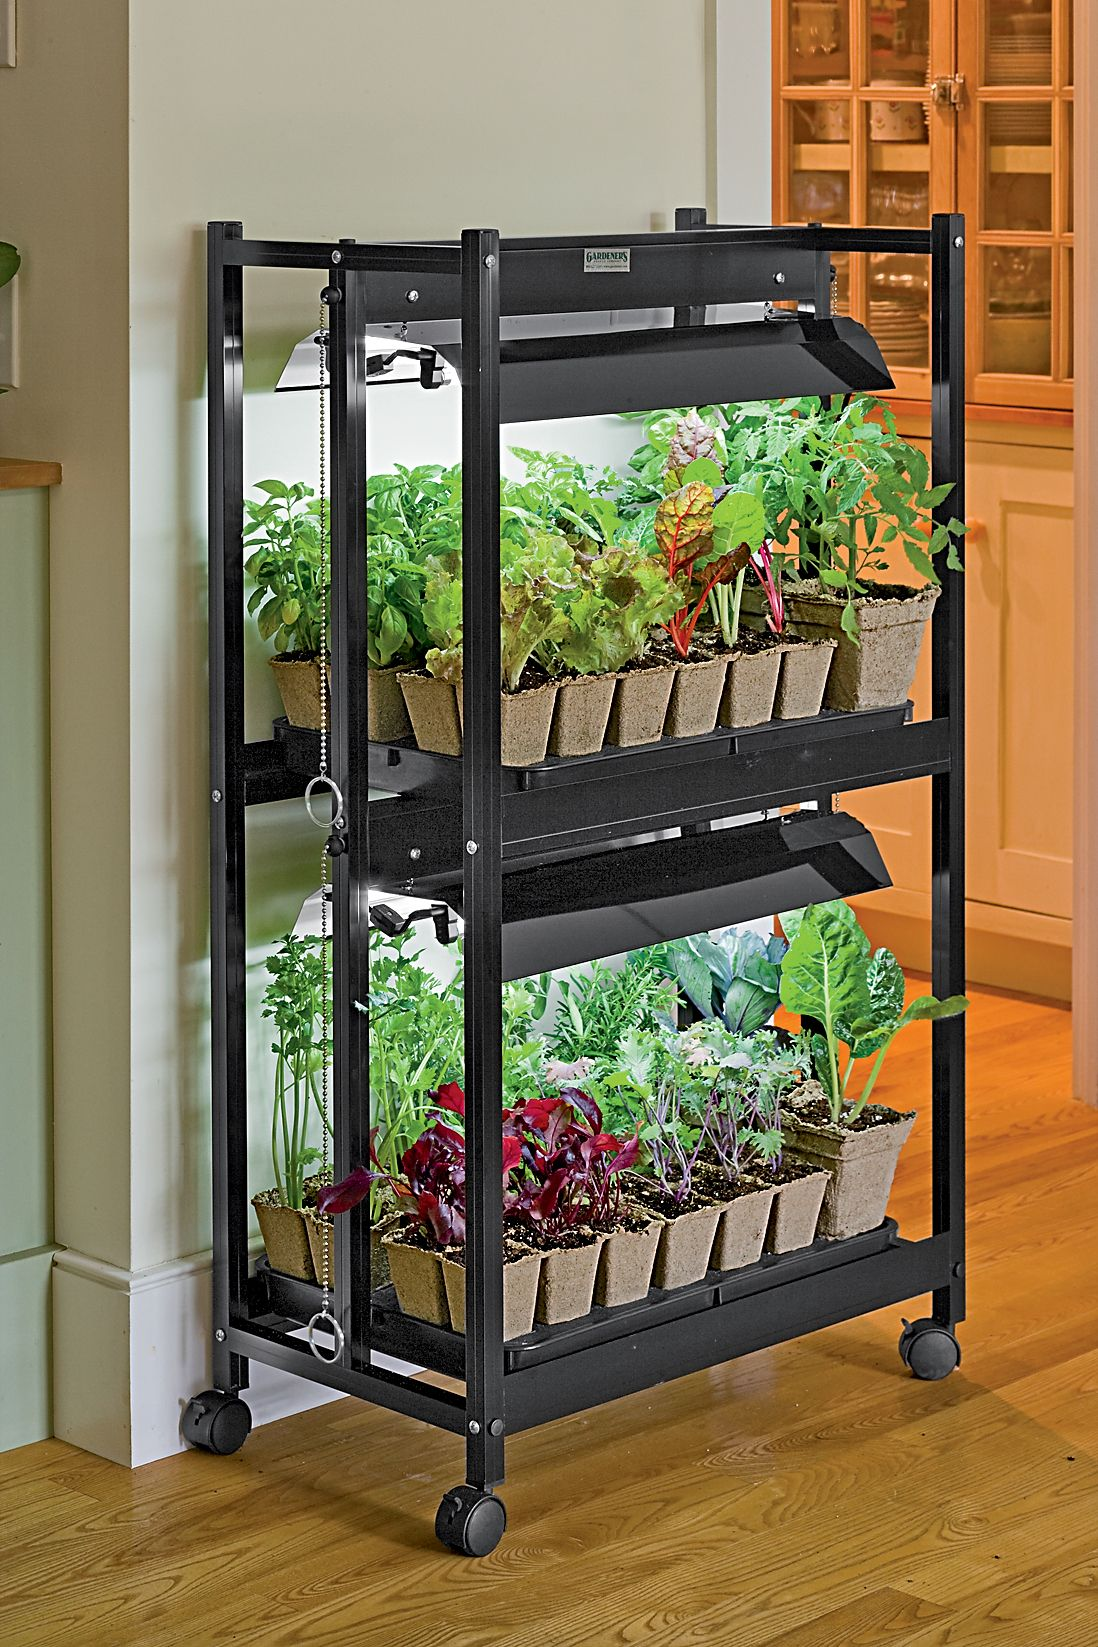 Exceptionnel Indoor Vegetable Garden Tips, Starting Vegetable Gardens From Seeds Indoors